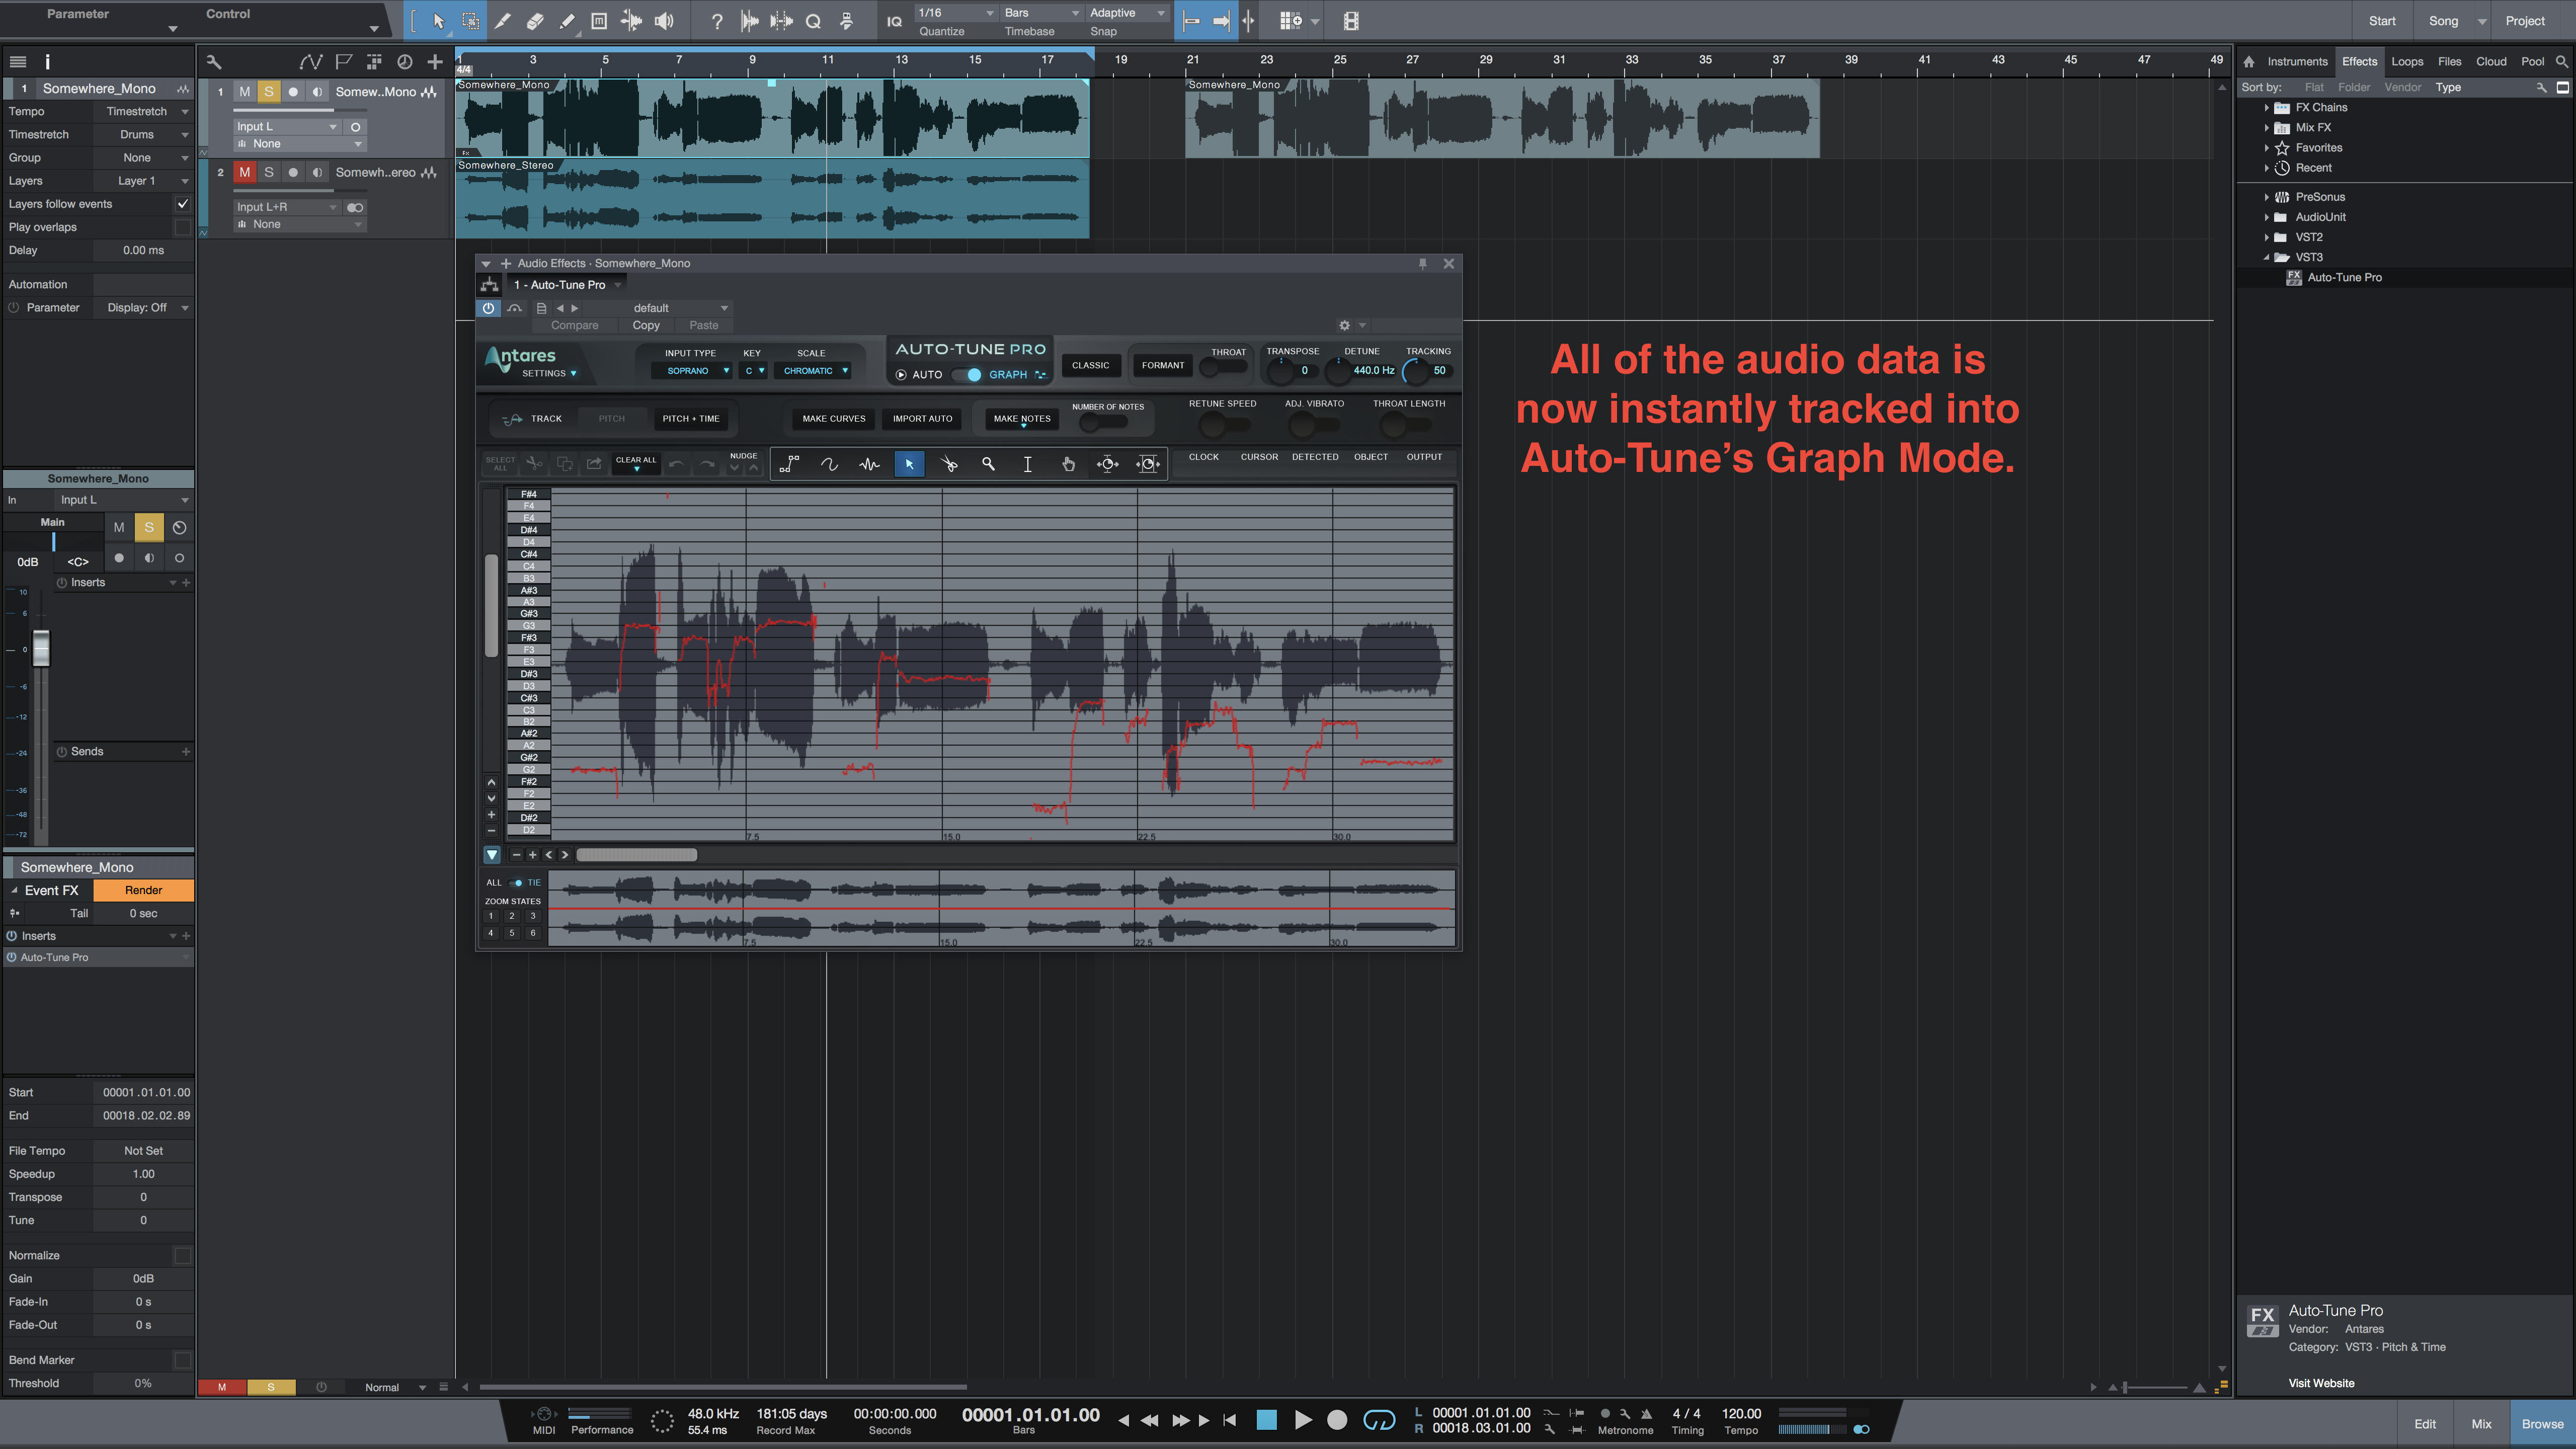 How to insert Auto-Tune Pro as an ARA plug-in in Studio One